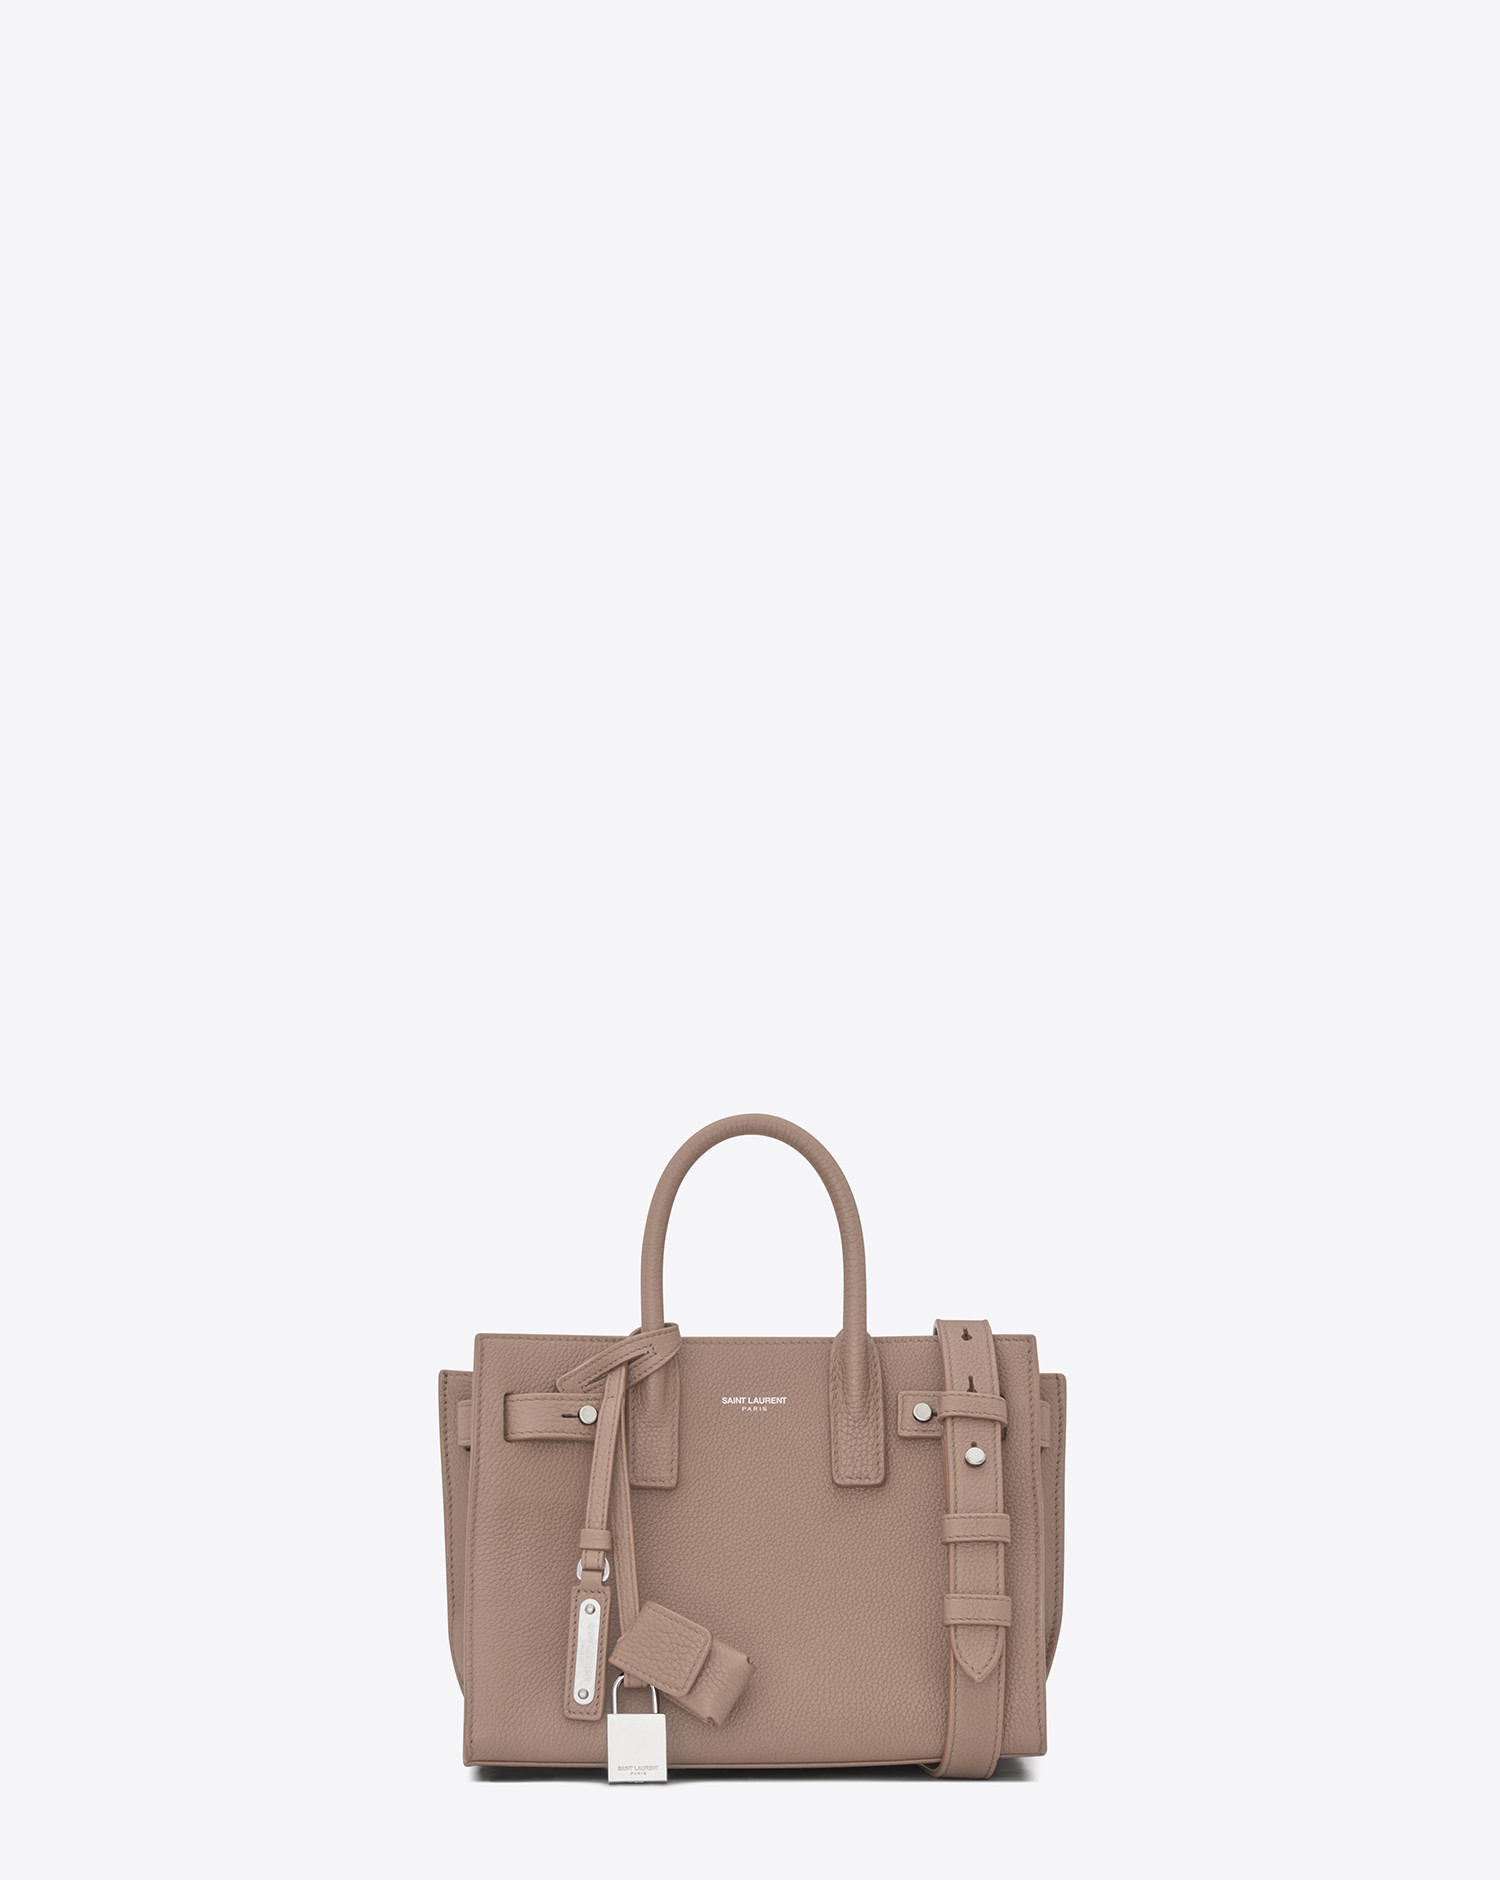 YSL Nano SAC DE JOUR Souple Bag in Rose